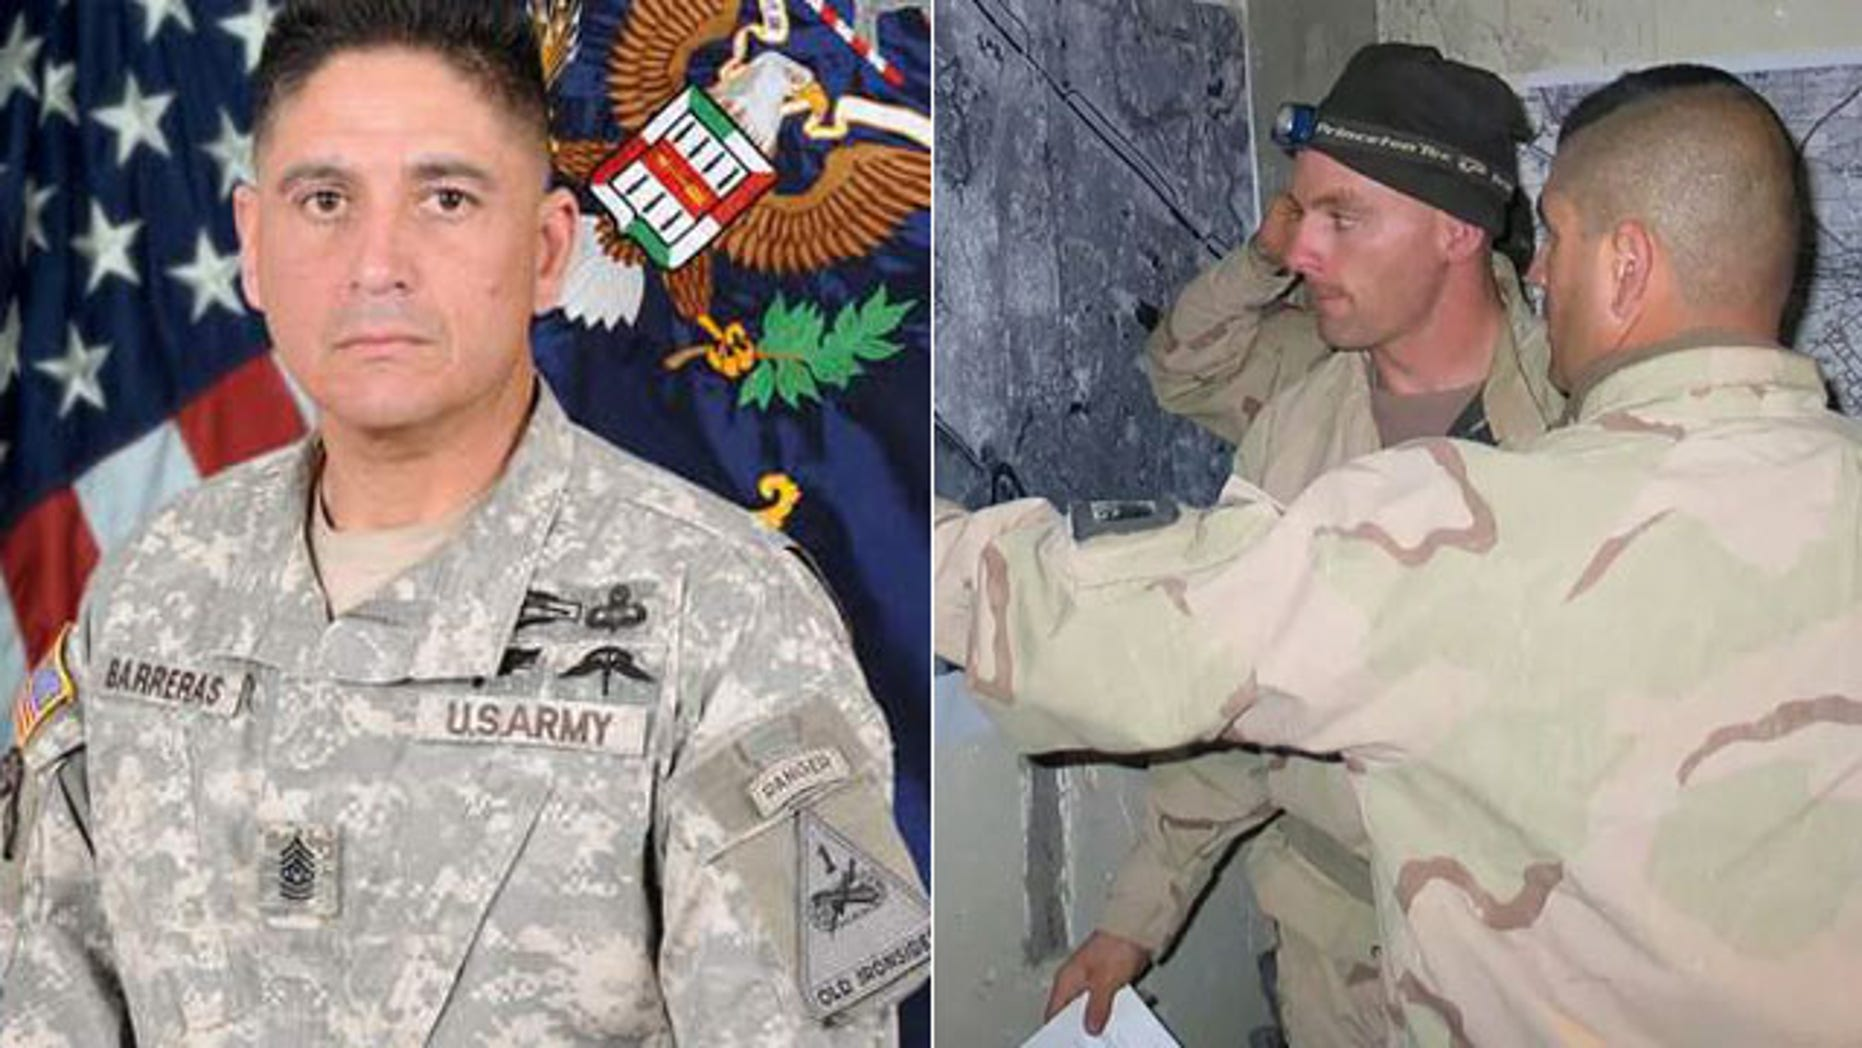 Command Sgt. Maj. Martin R. Barreras in a US Army photograph, left, and in the foreground planning for the Jessica Lynch rescue, right.